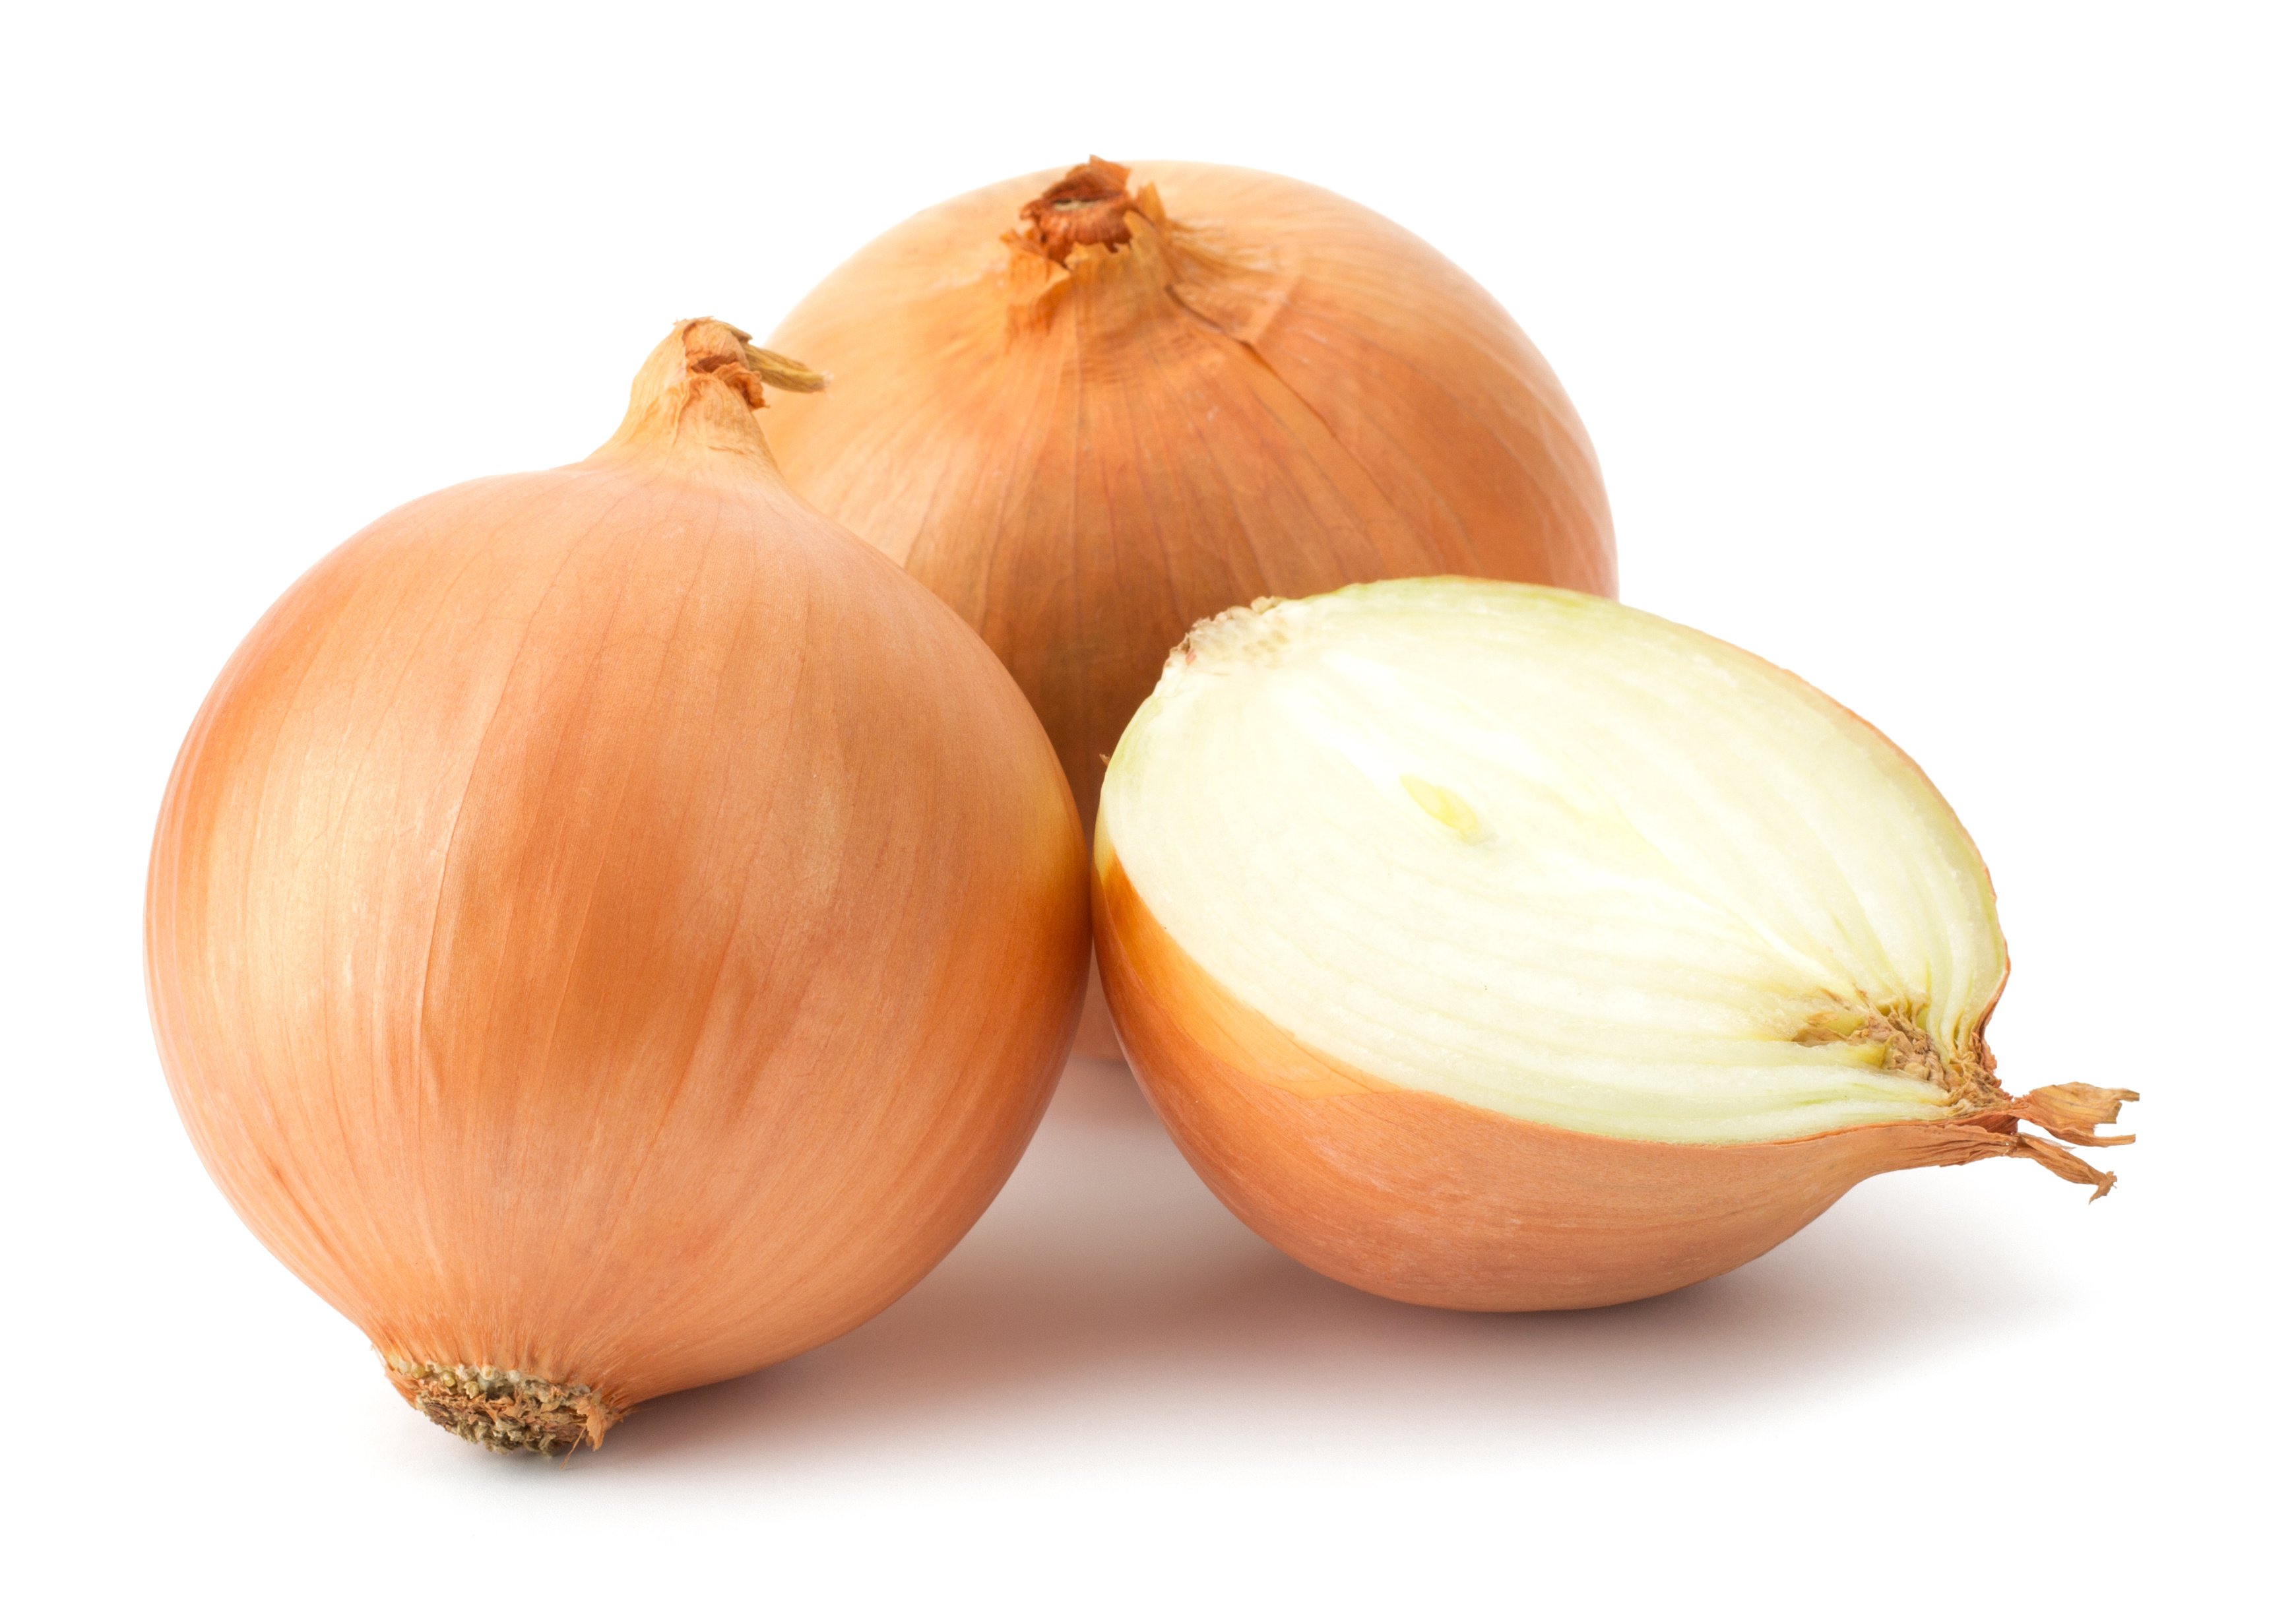 For the Love of Onions - Age Old